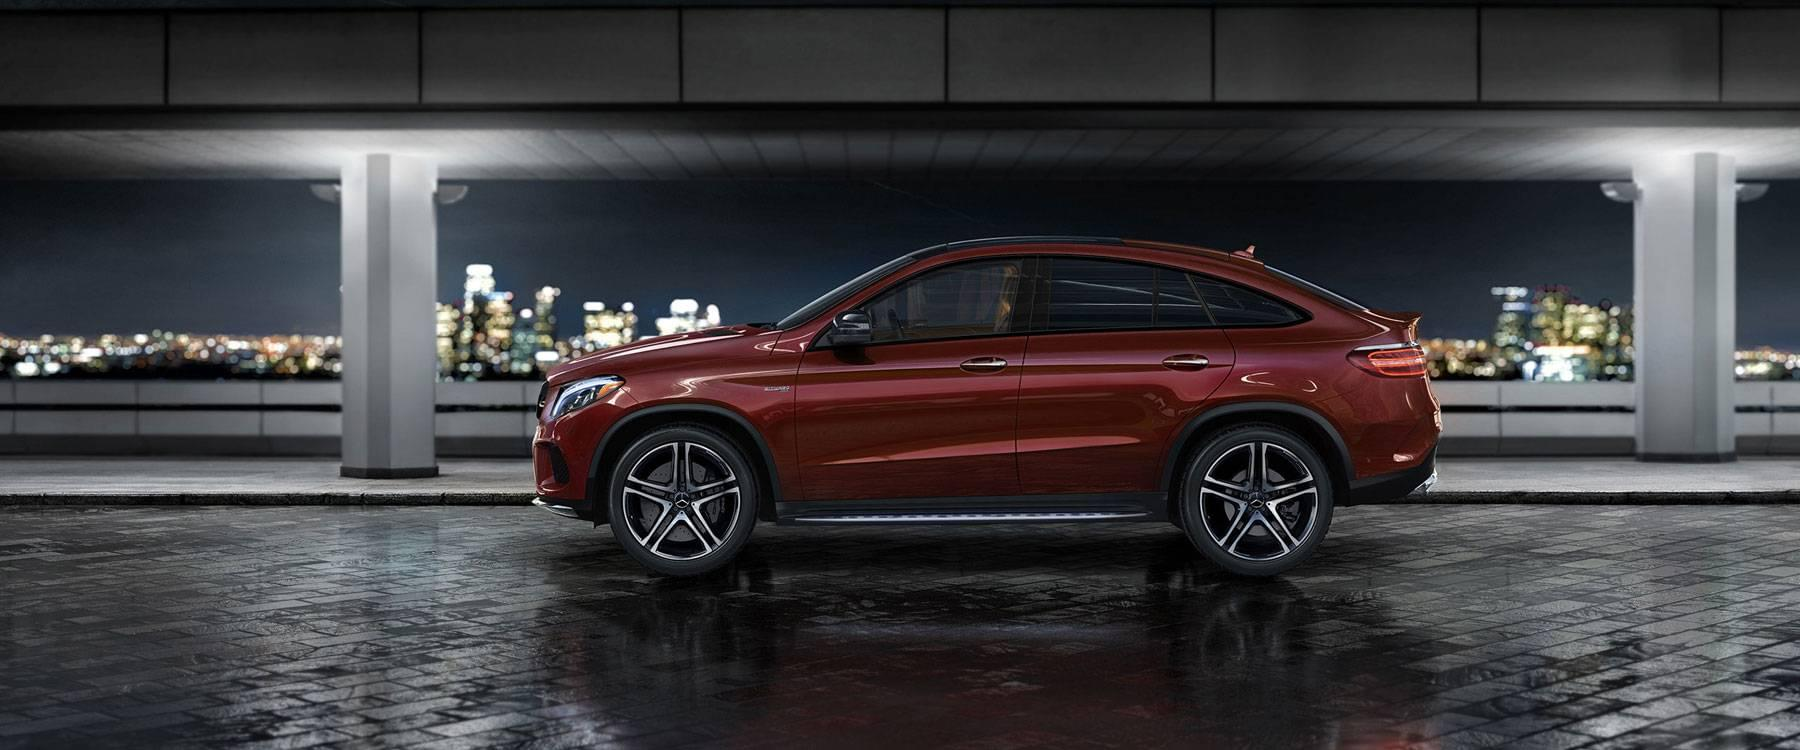 The 2017 mercedes benz amg gle 43 sports activity coupe for Mercedes benz gle amg